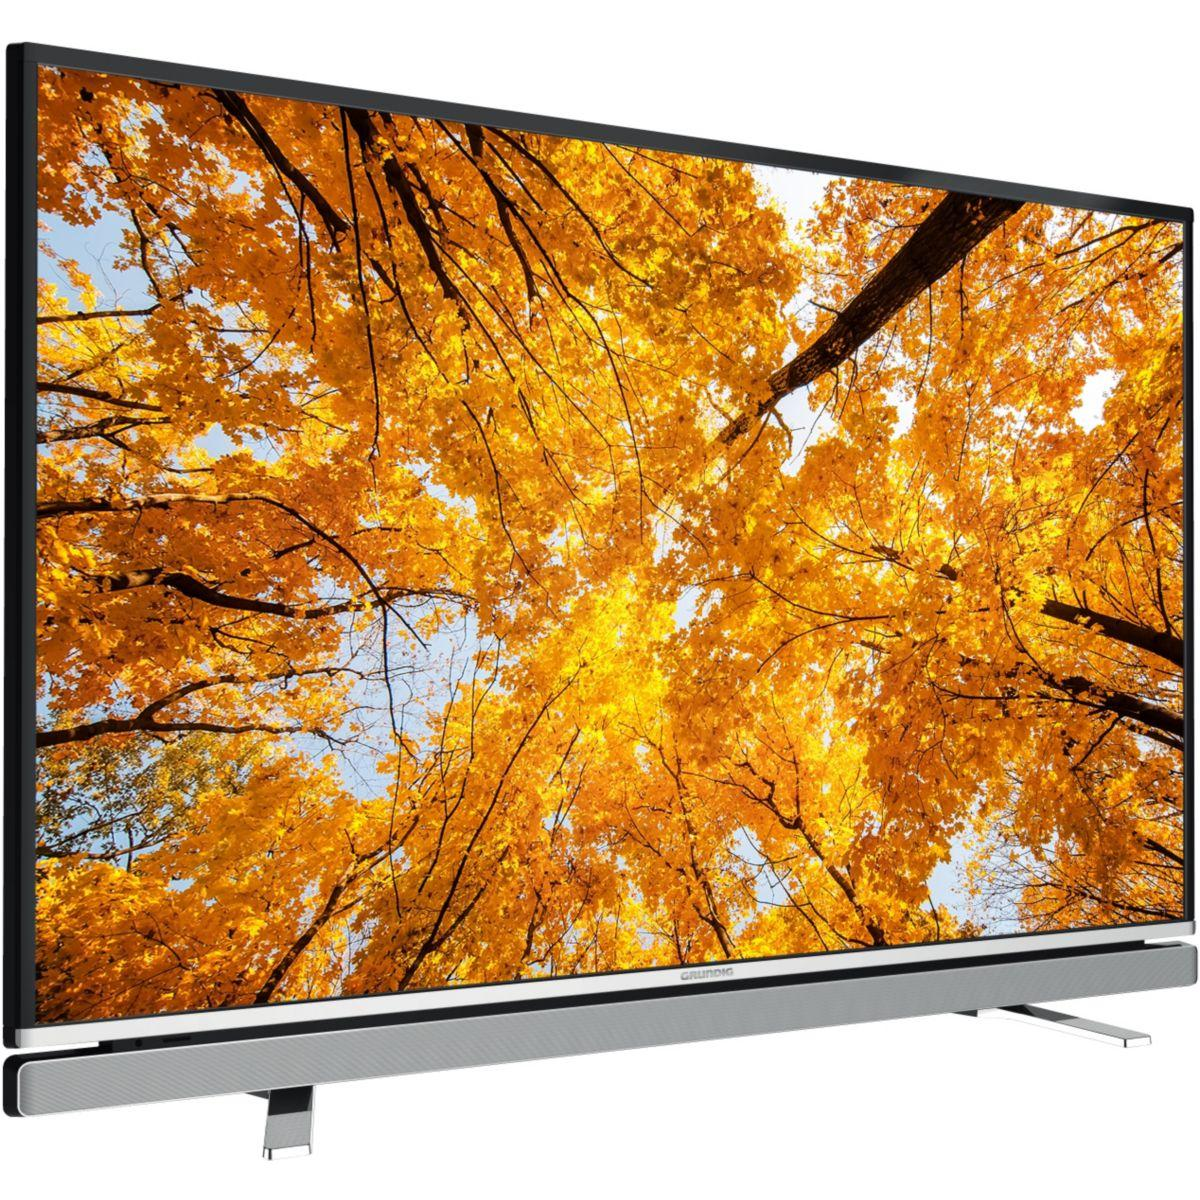 Tv grundig 49vle6621bp 600hz ppr smart tv - 3% de remise immédiate avec le code : multi3 (photo)